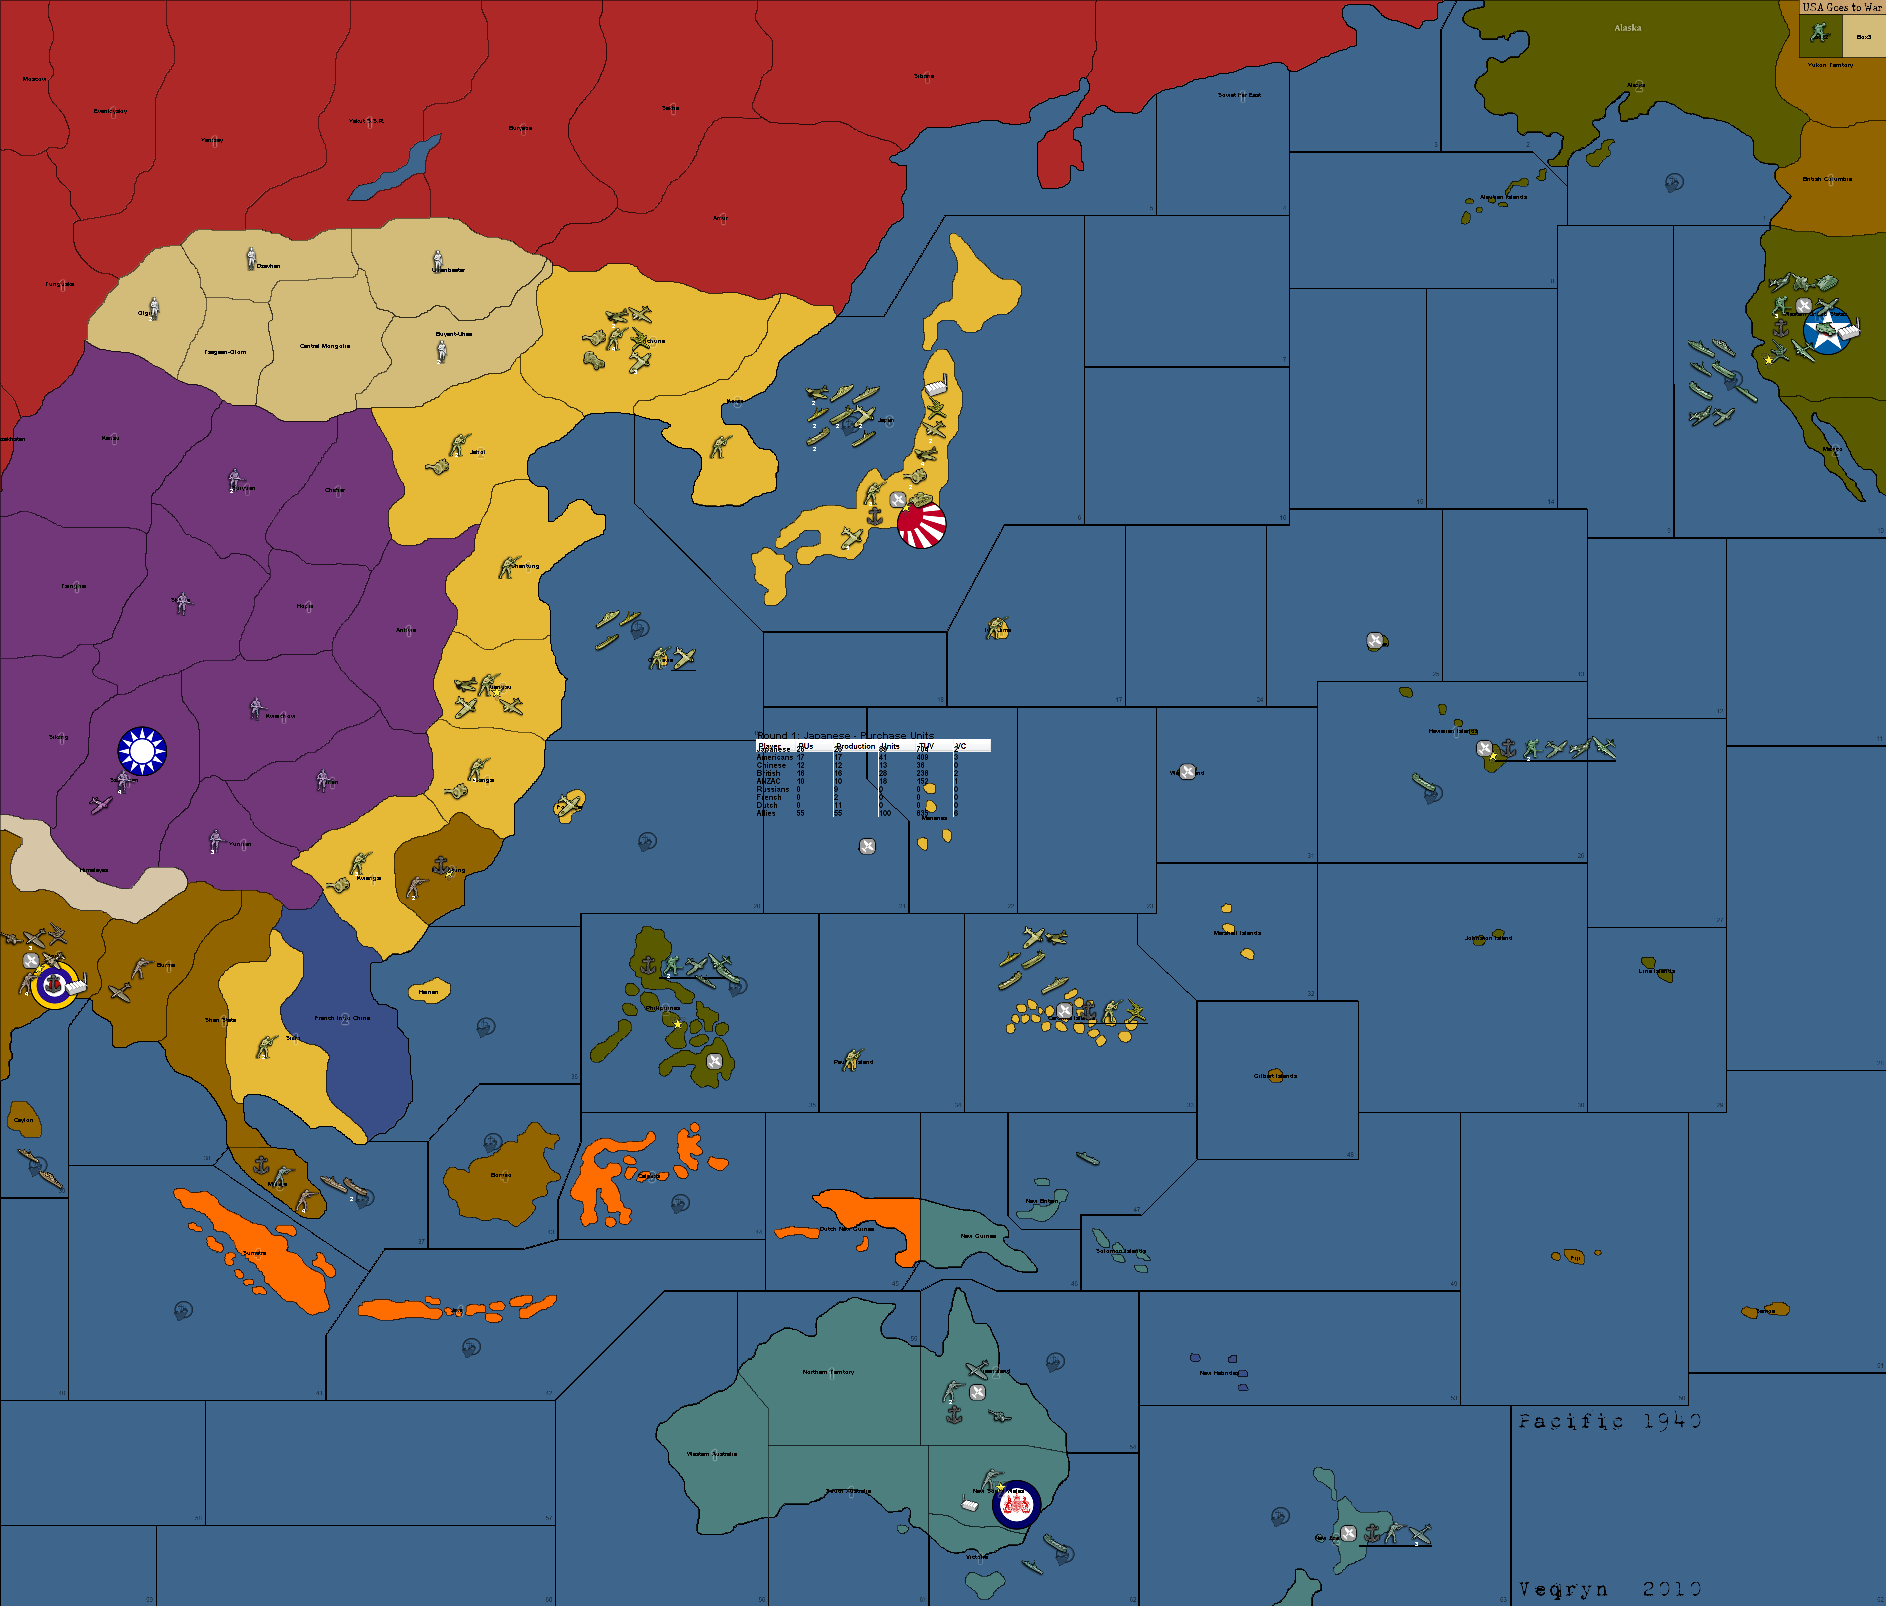 Axis And Allies Pacific Map World War II Pacific | Axis & Allies Wiki | FANDOM powered by Wikia